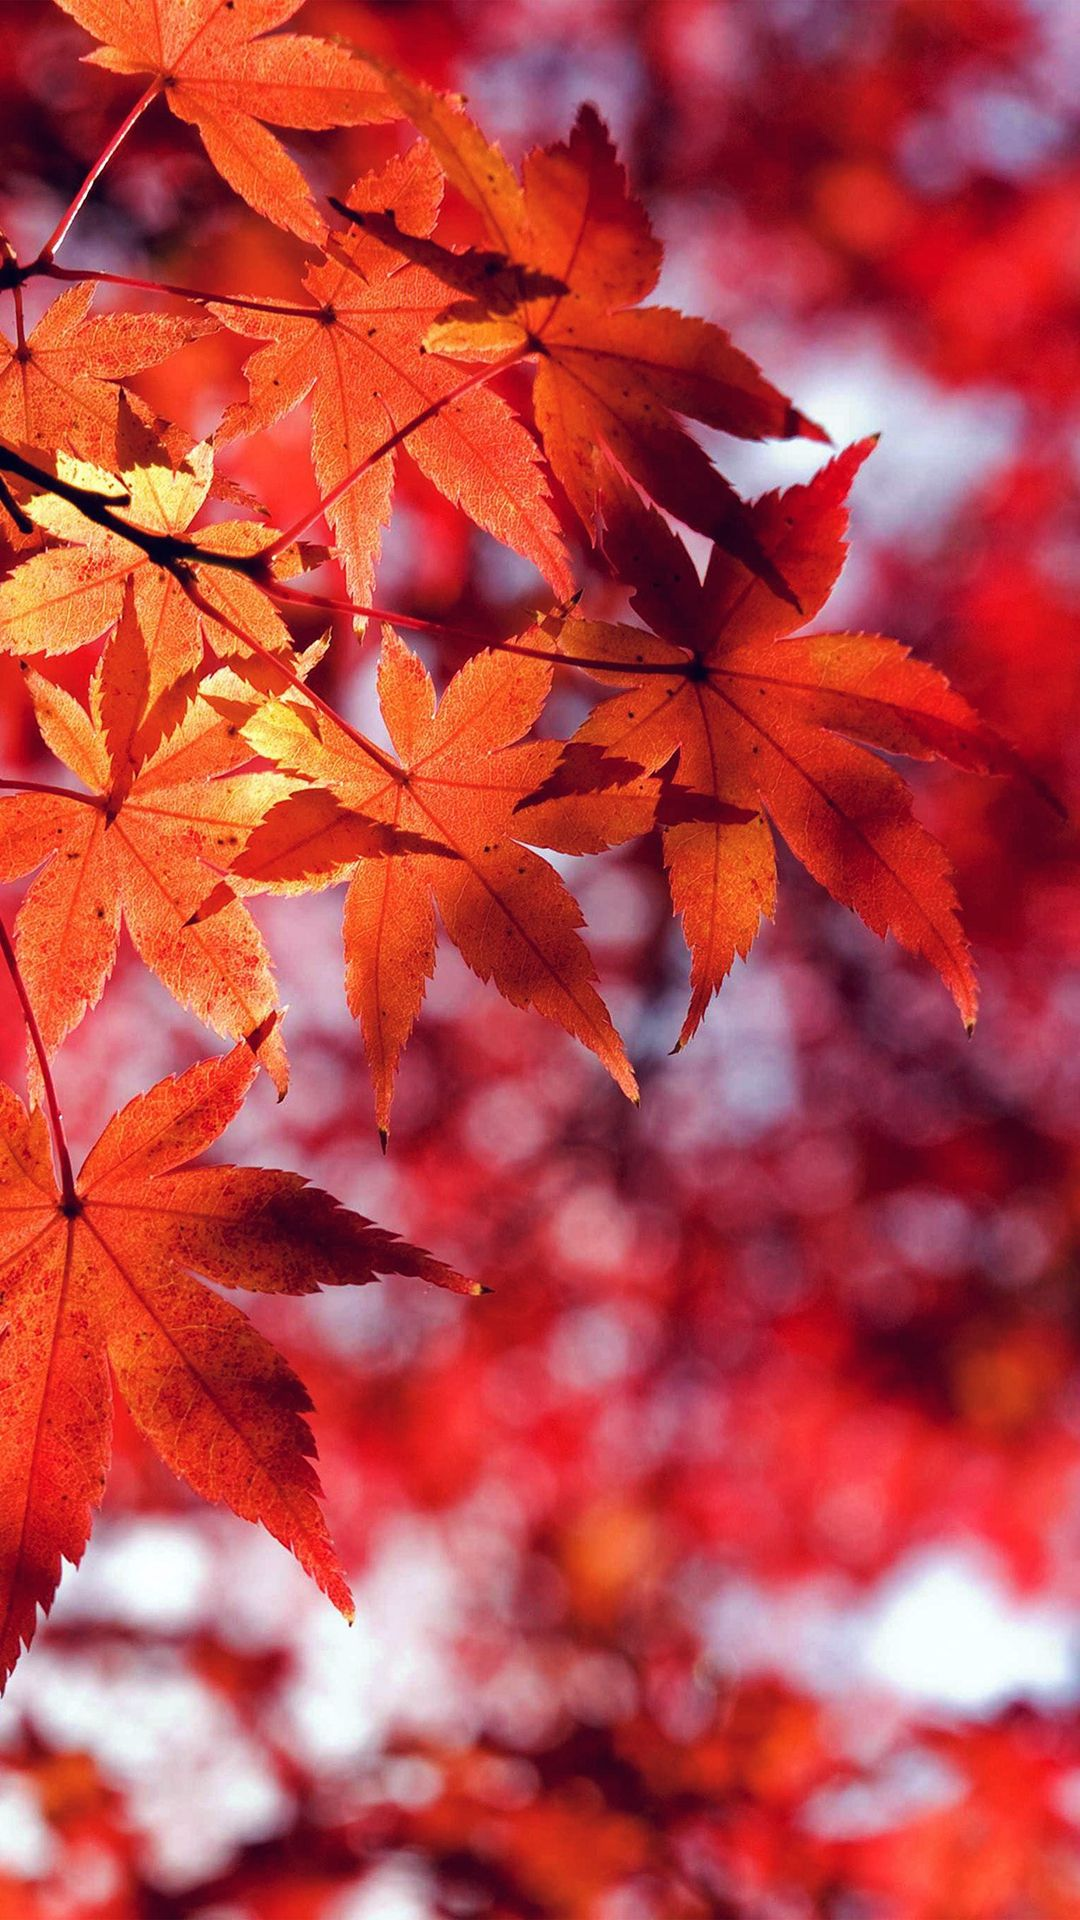 Fall Leaf Red Mountain Bokeh Iphone 6 Wallpaper Download Iphone Wallpapers Ipad Wallpapers One St Fall Wallpaper Autumn Leaves Wallpaper Iphone 5s Wallpaper